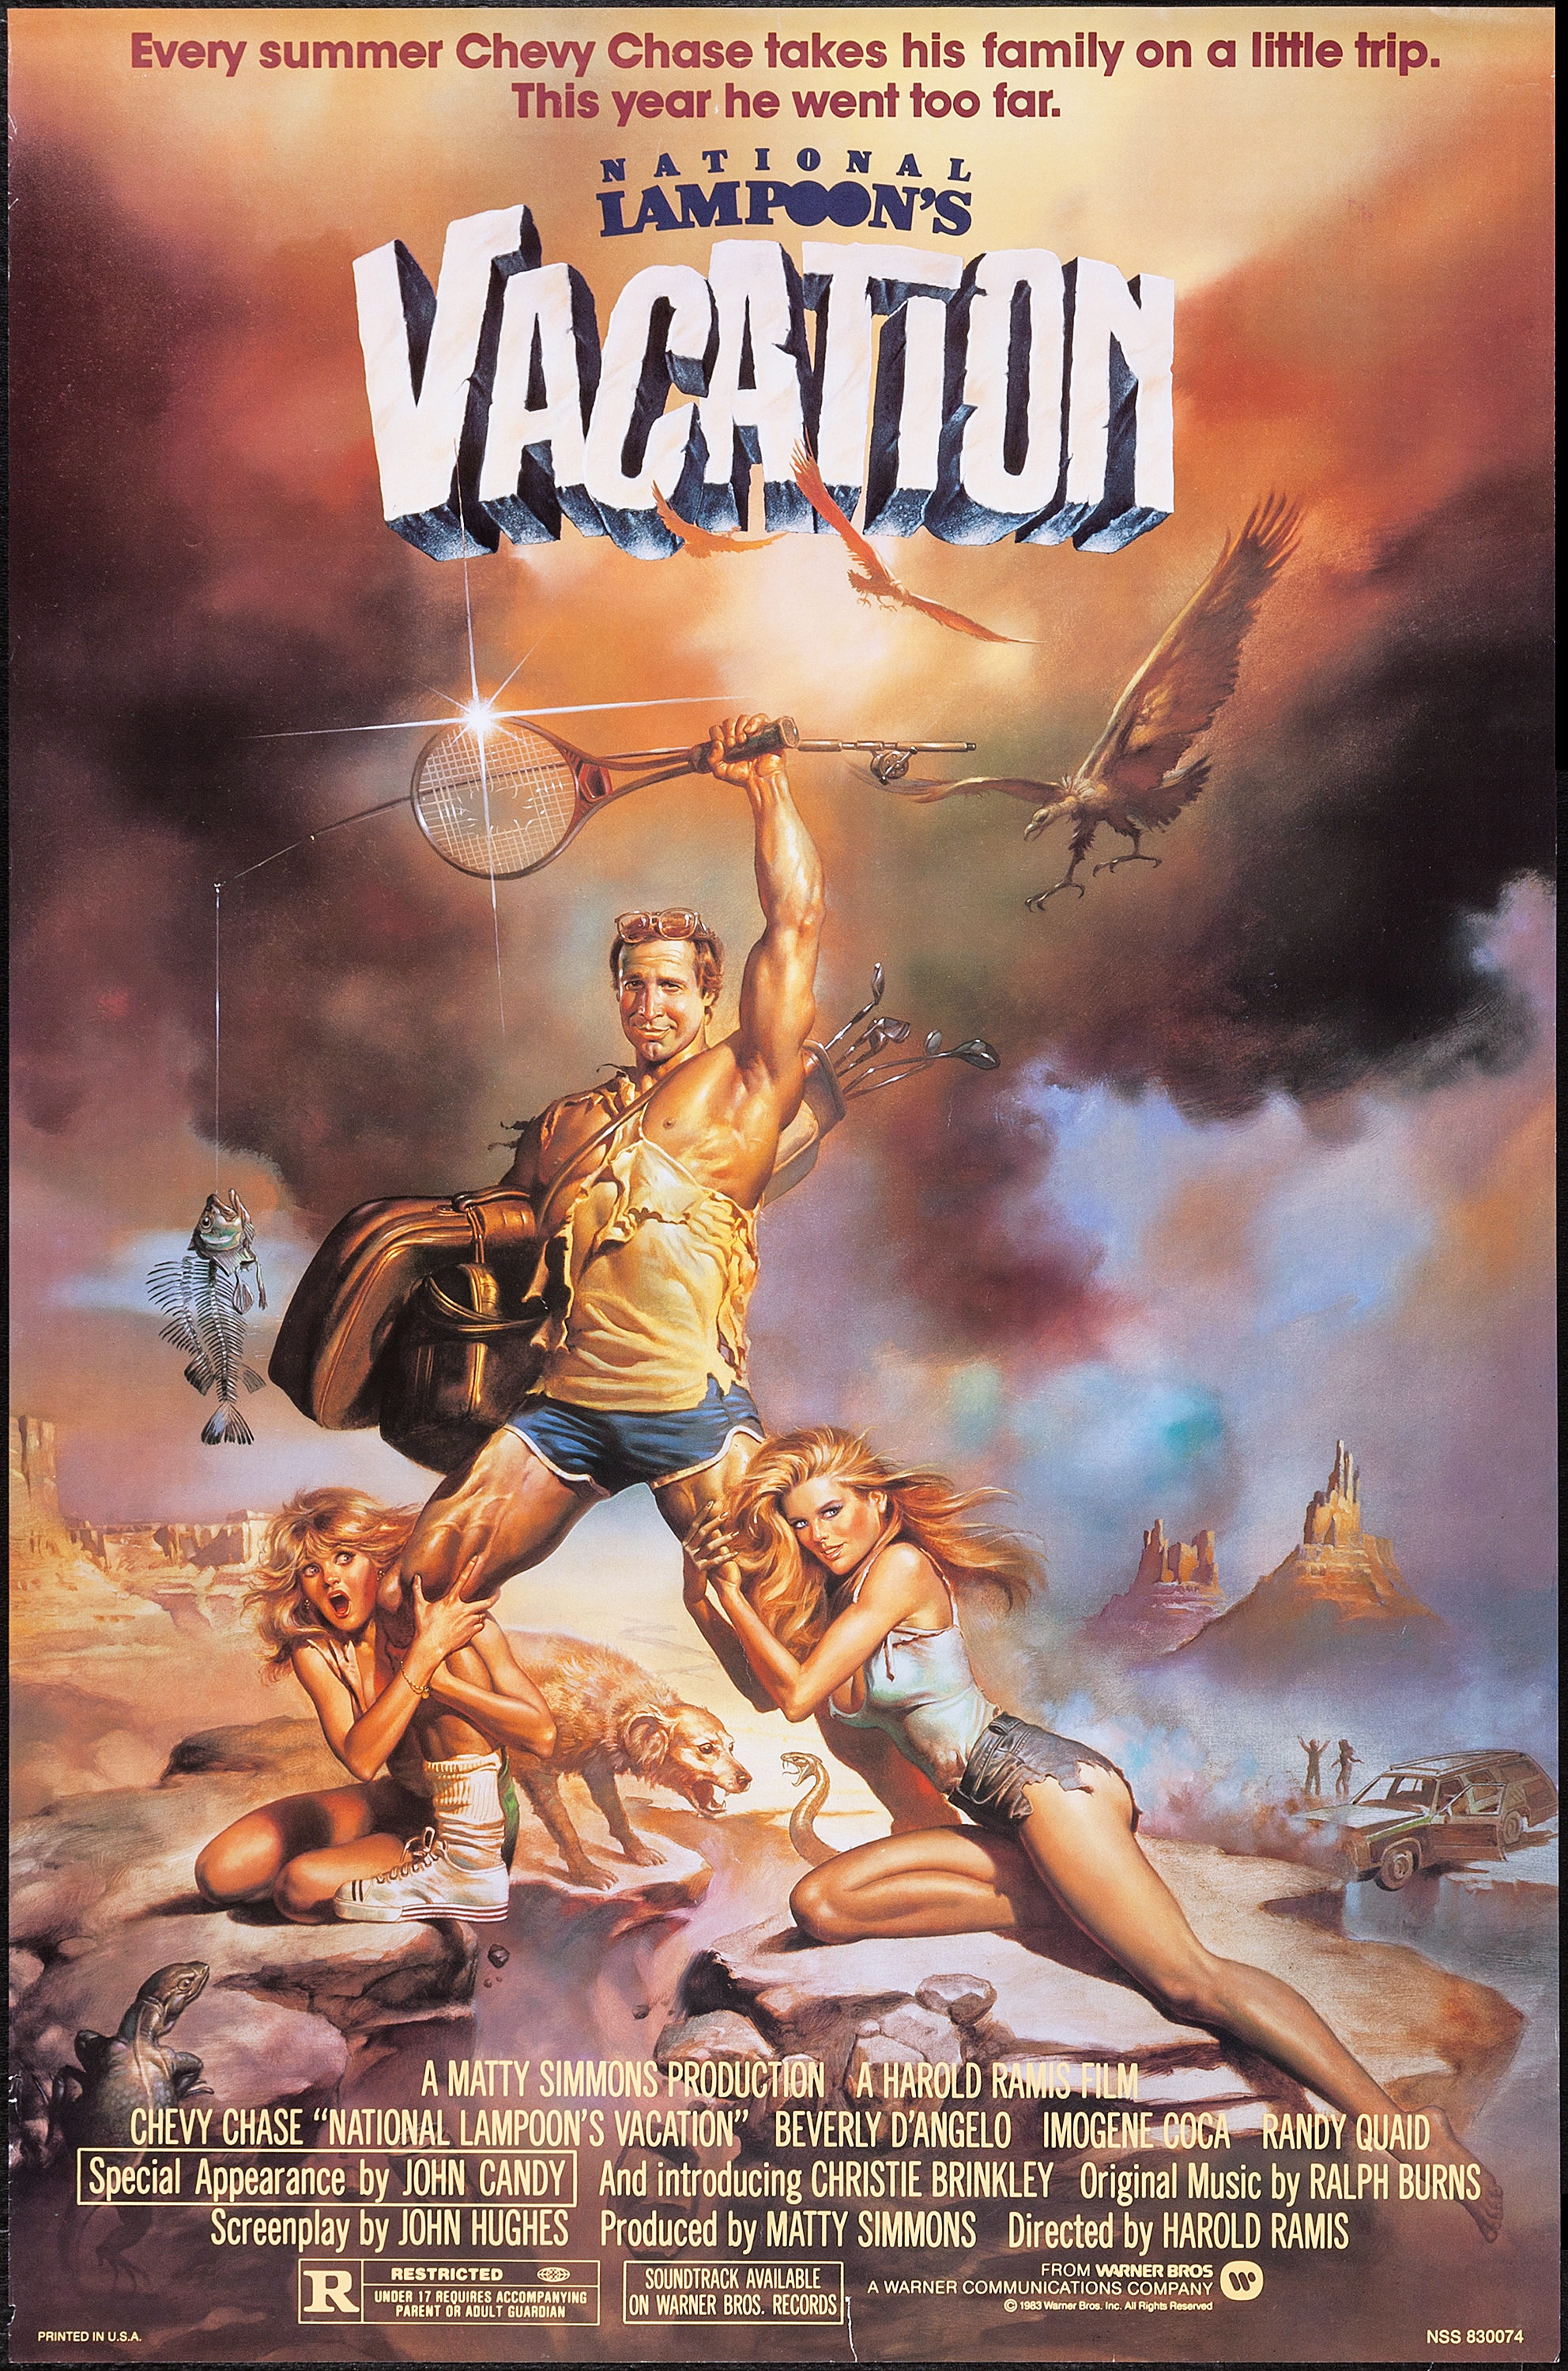 national Lampoon's Vacation - www.filmfad.com